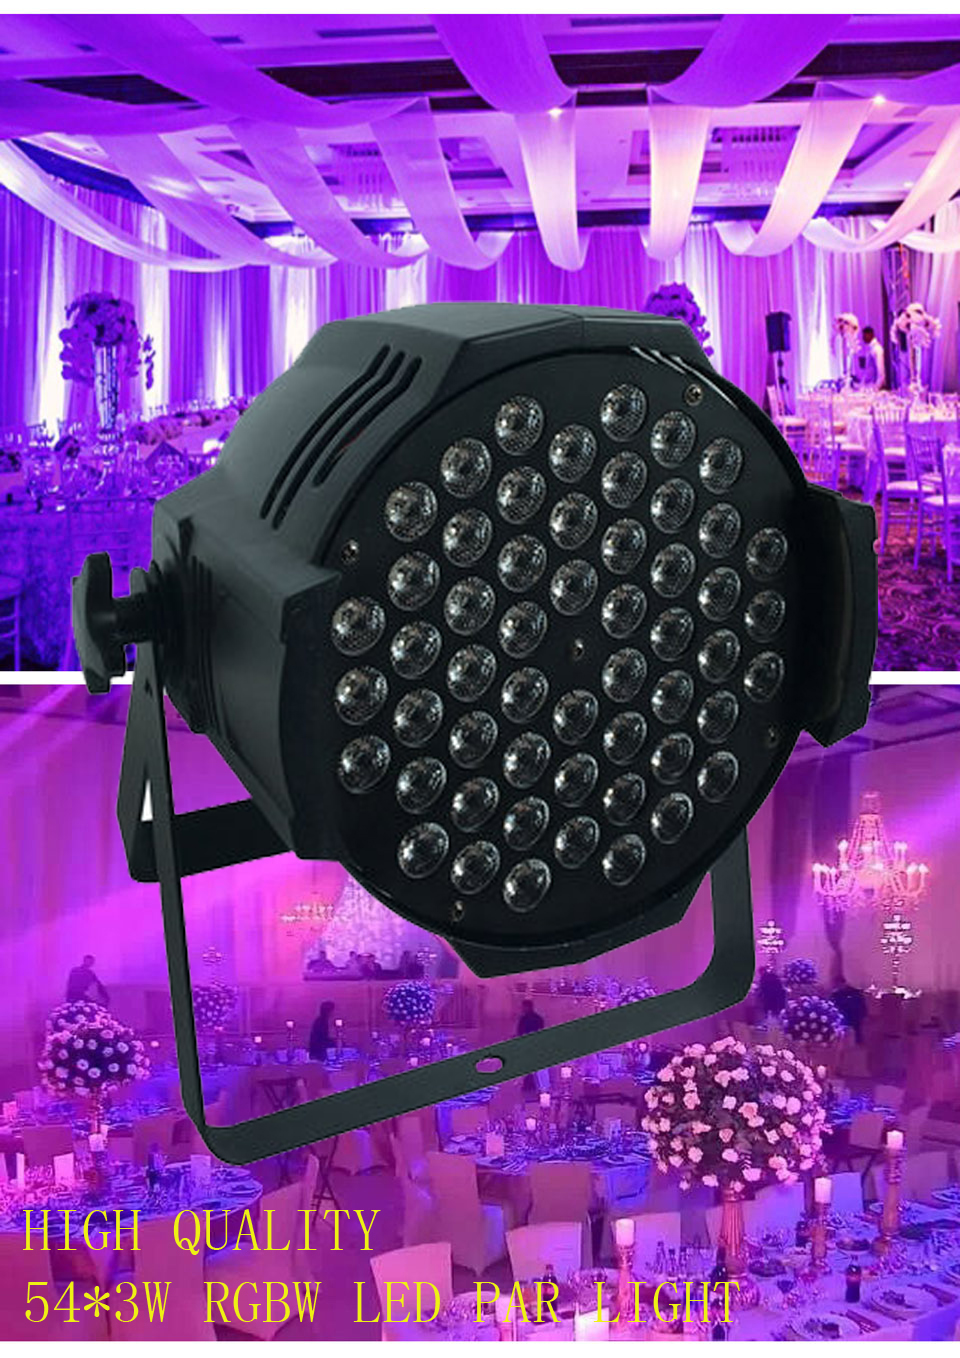 4X LOT High Quality CE Approved RGBW 54*3W LED Par Light Stage Par64 Light High Quality  ...